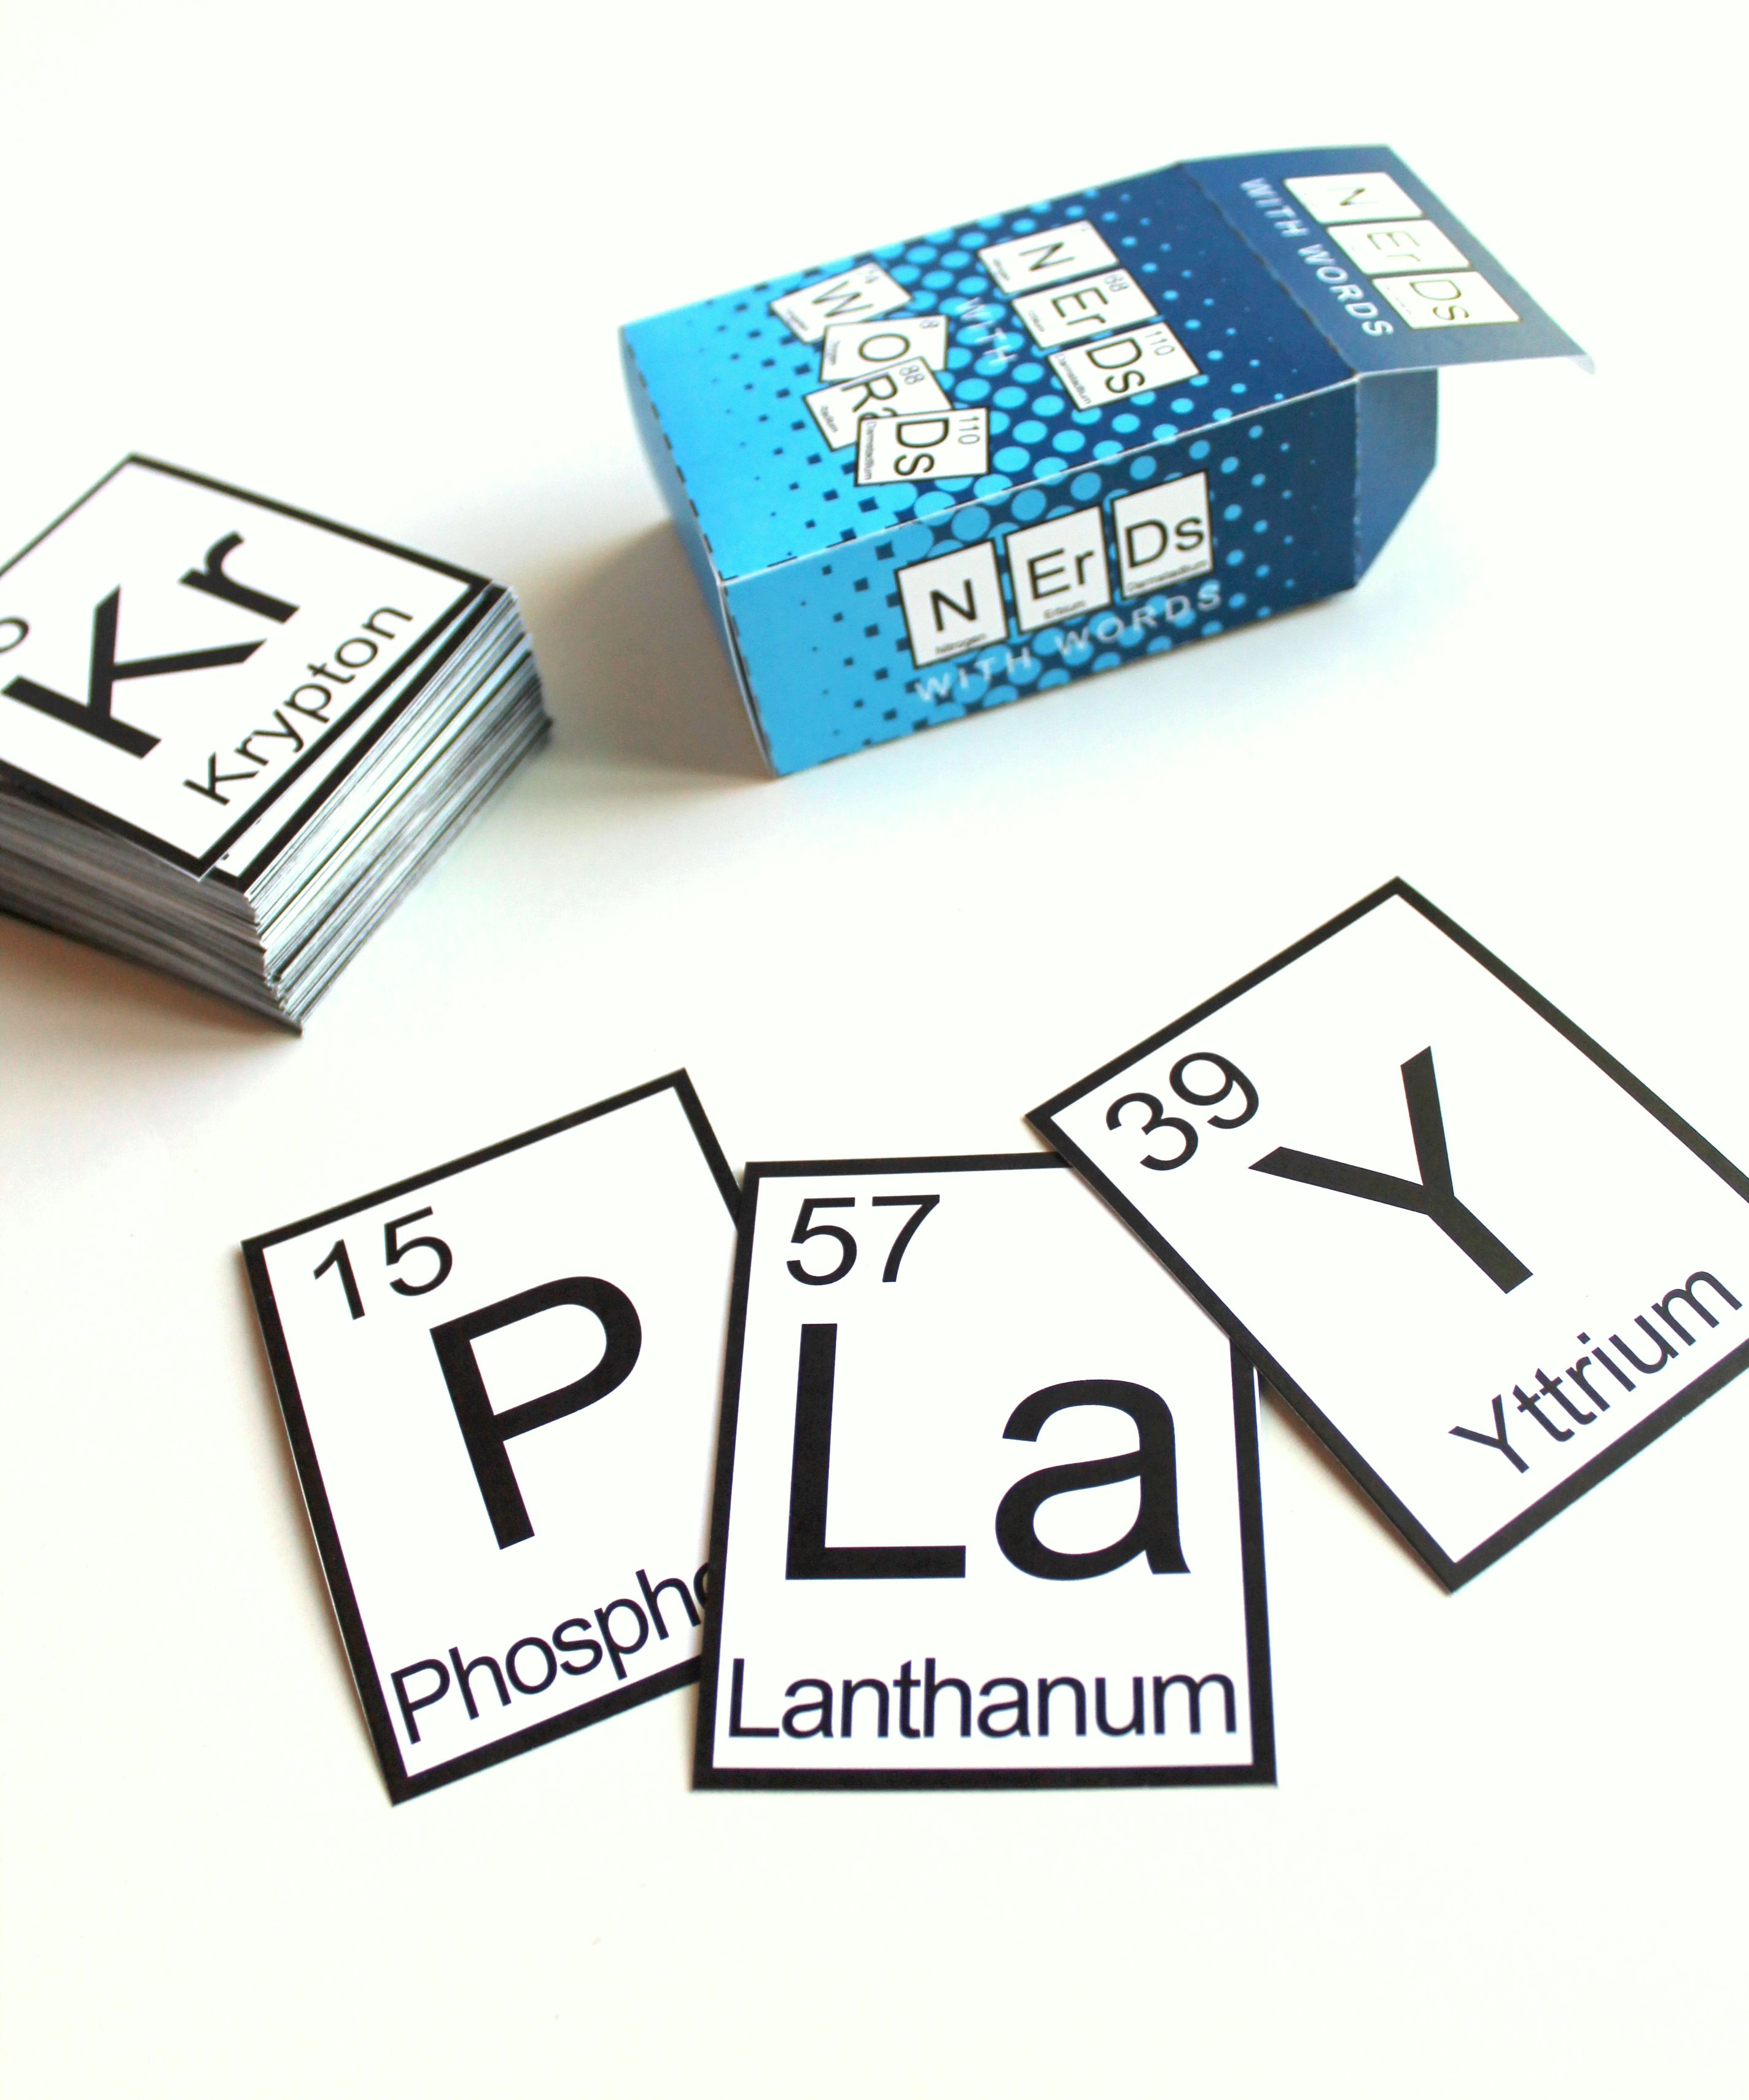 Geek up nerds with words game periodic elements game pdf file geek up nerds with words game periodic elements game pdf file urtaz Gallery